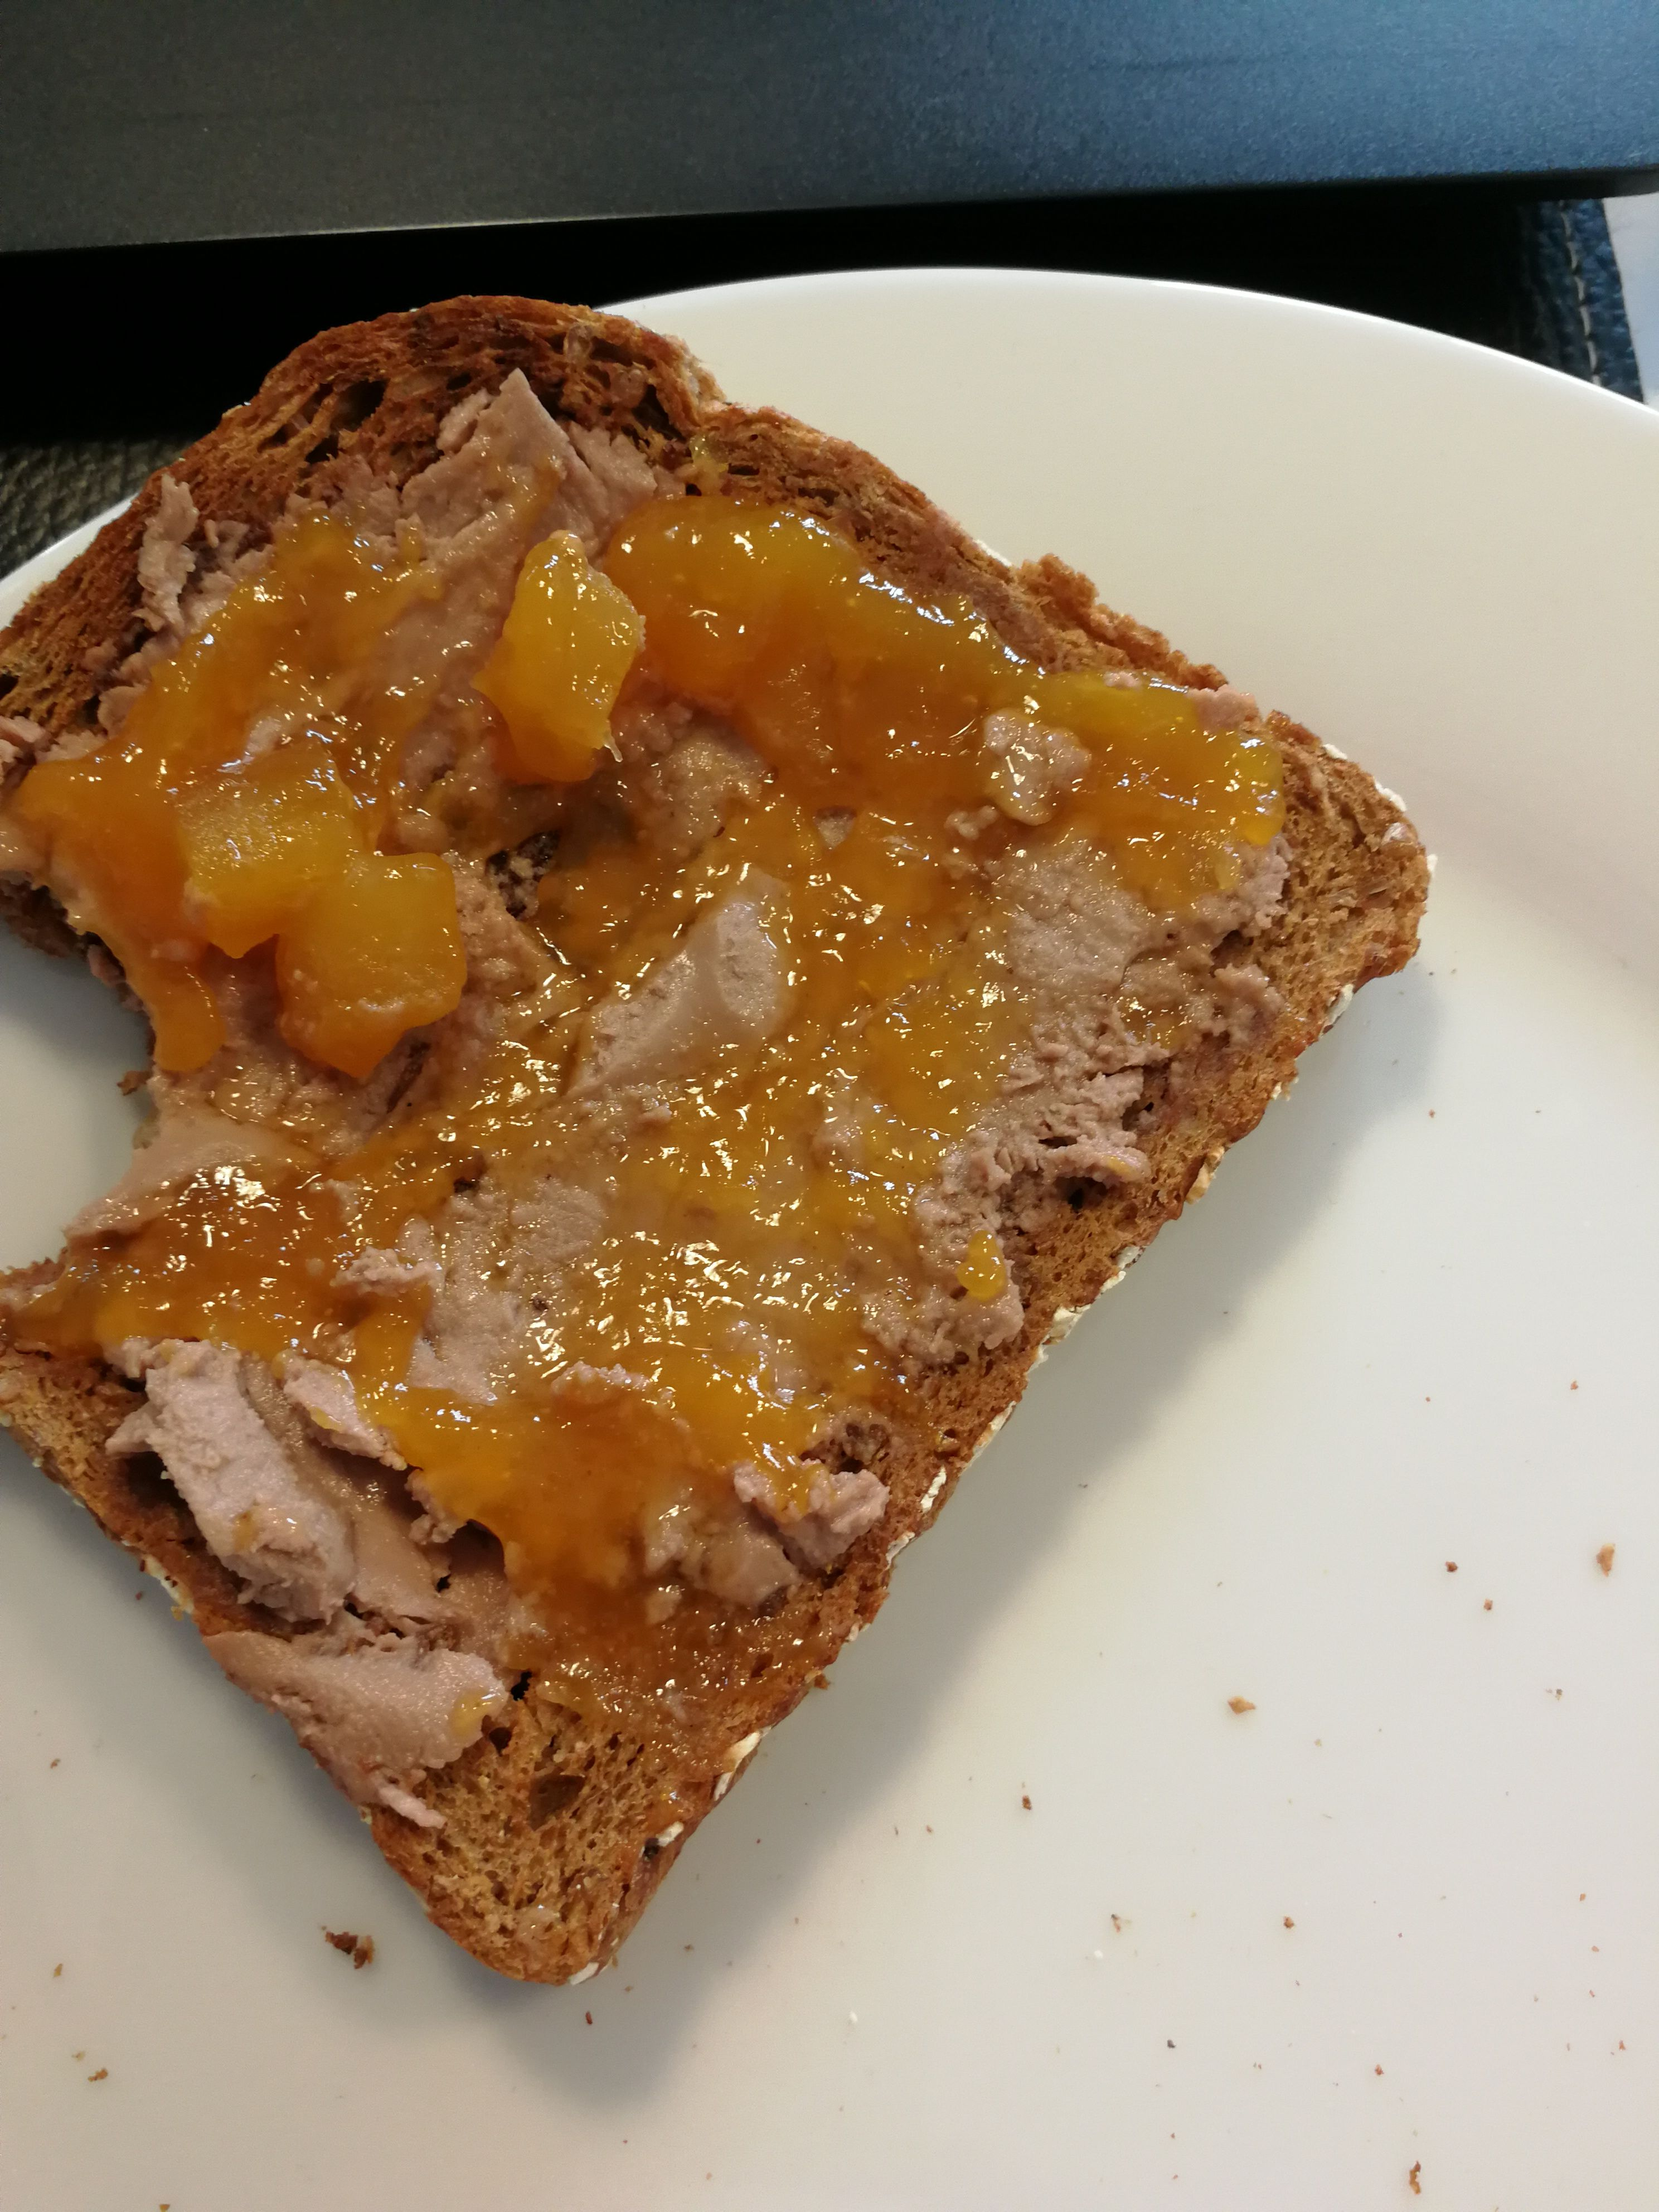 I present you the European peanutbutter jelly sandwich - foie gras with jam